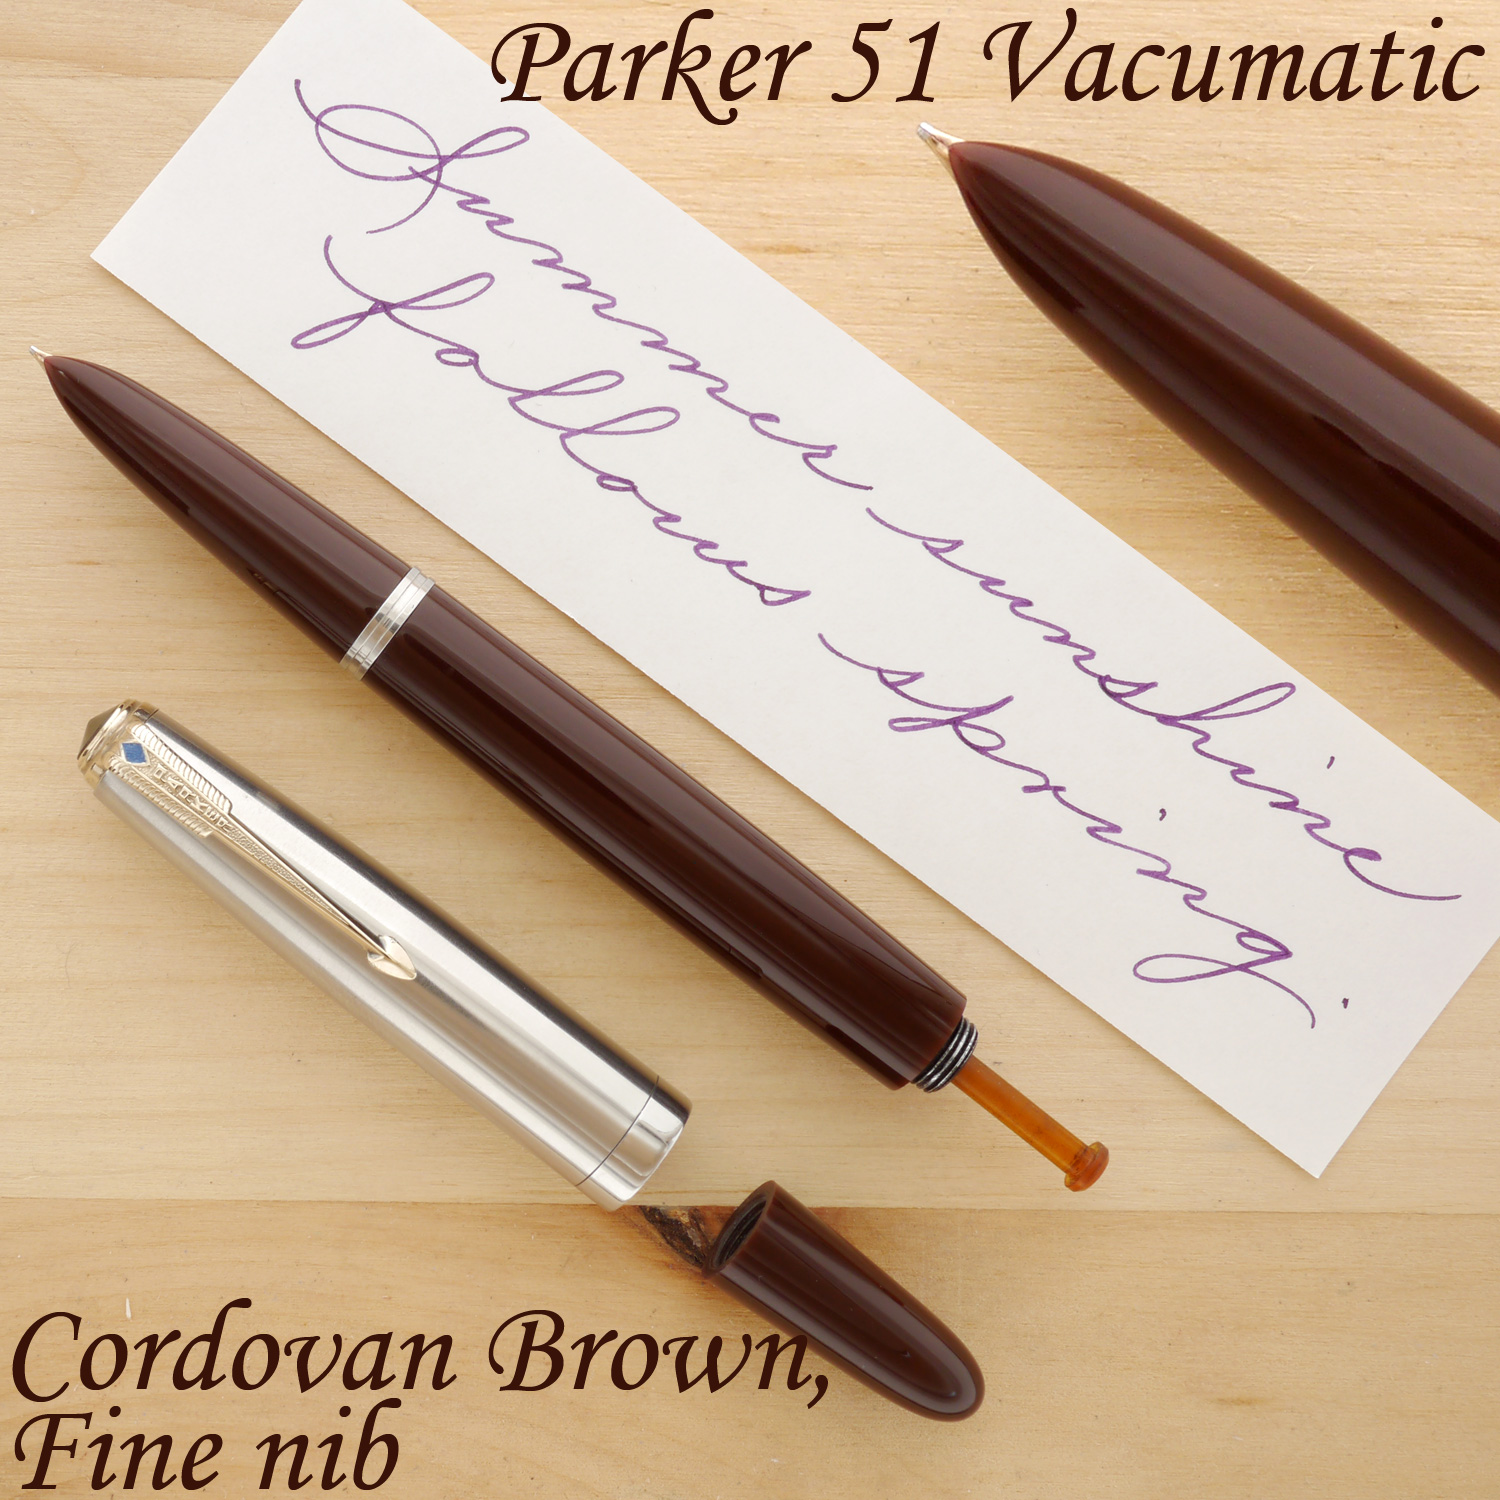 Parker 51 Vacumatic Fountain Pen, Cordovan Brown, F, with the cap and blind cap removed